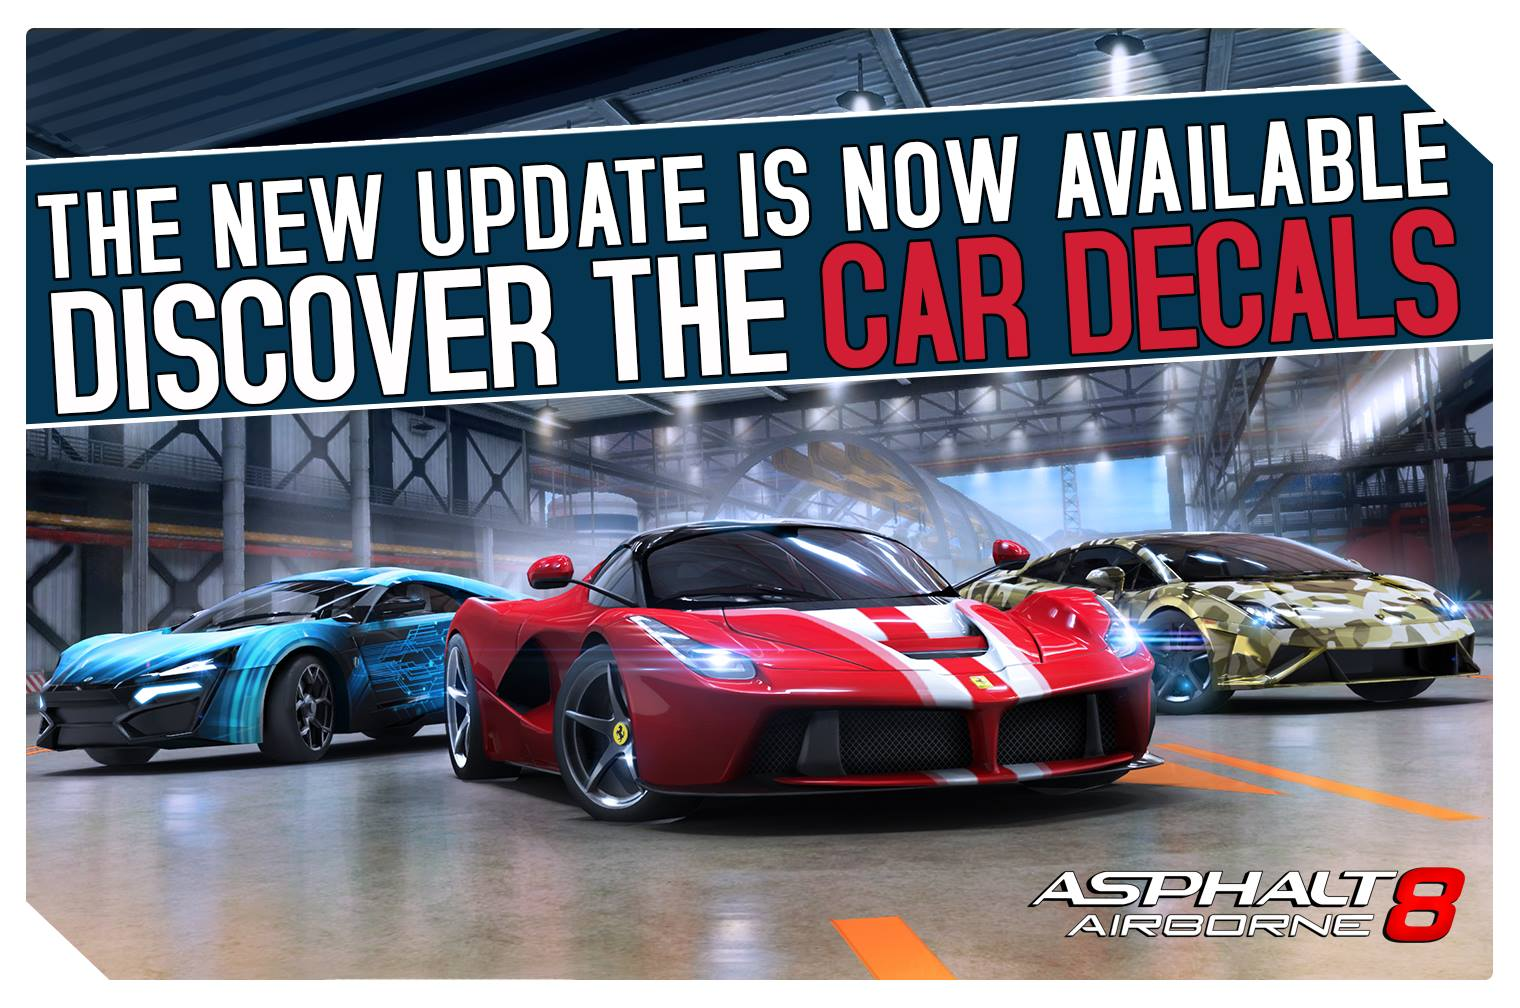 Asphalt 8 Airobrne 1.8 for iOS teaser 001